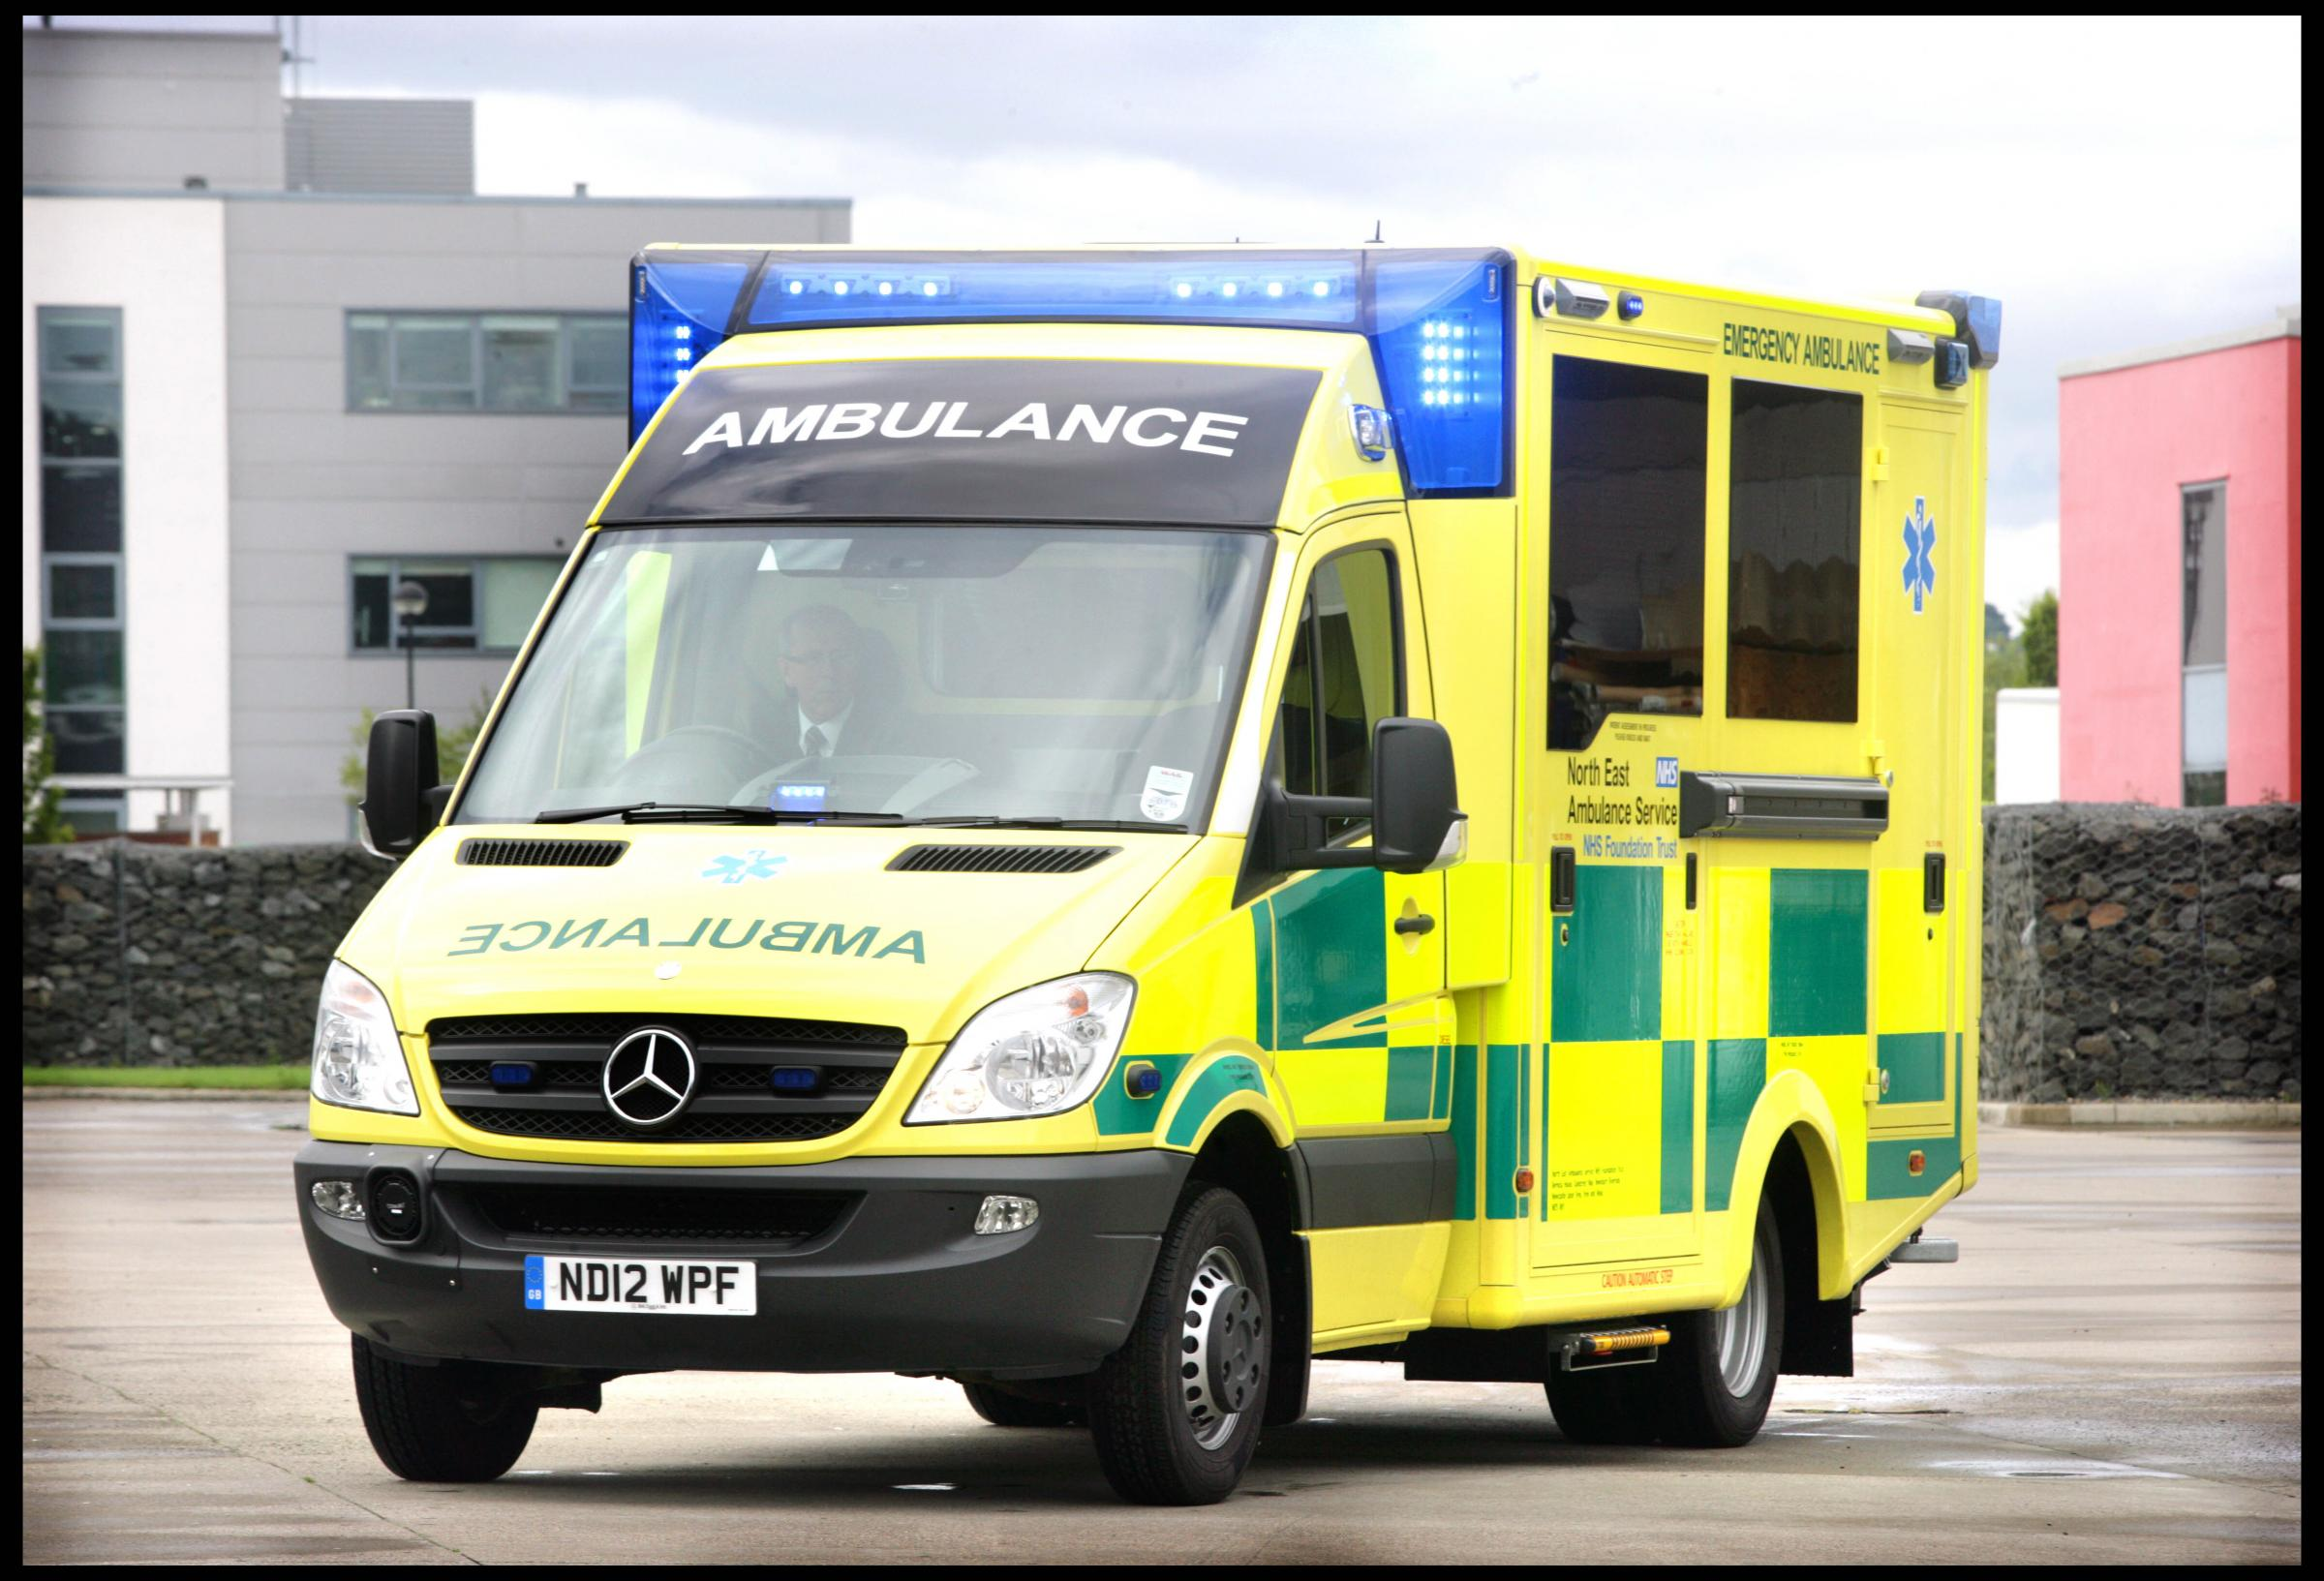 North East Ambulance Service has defended its